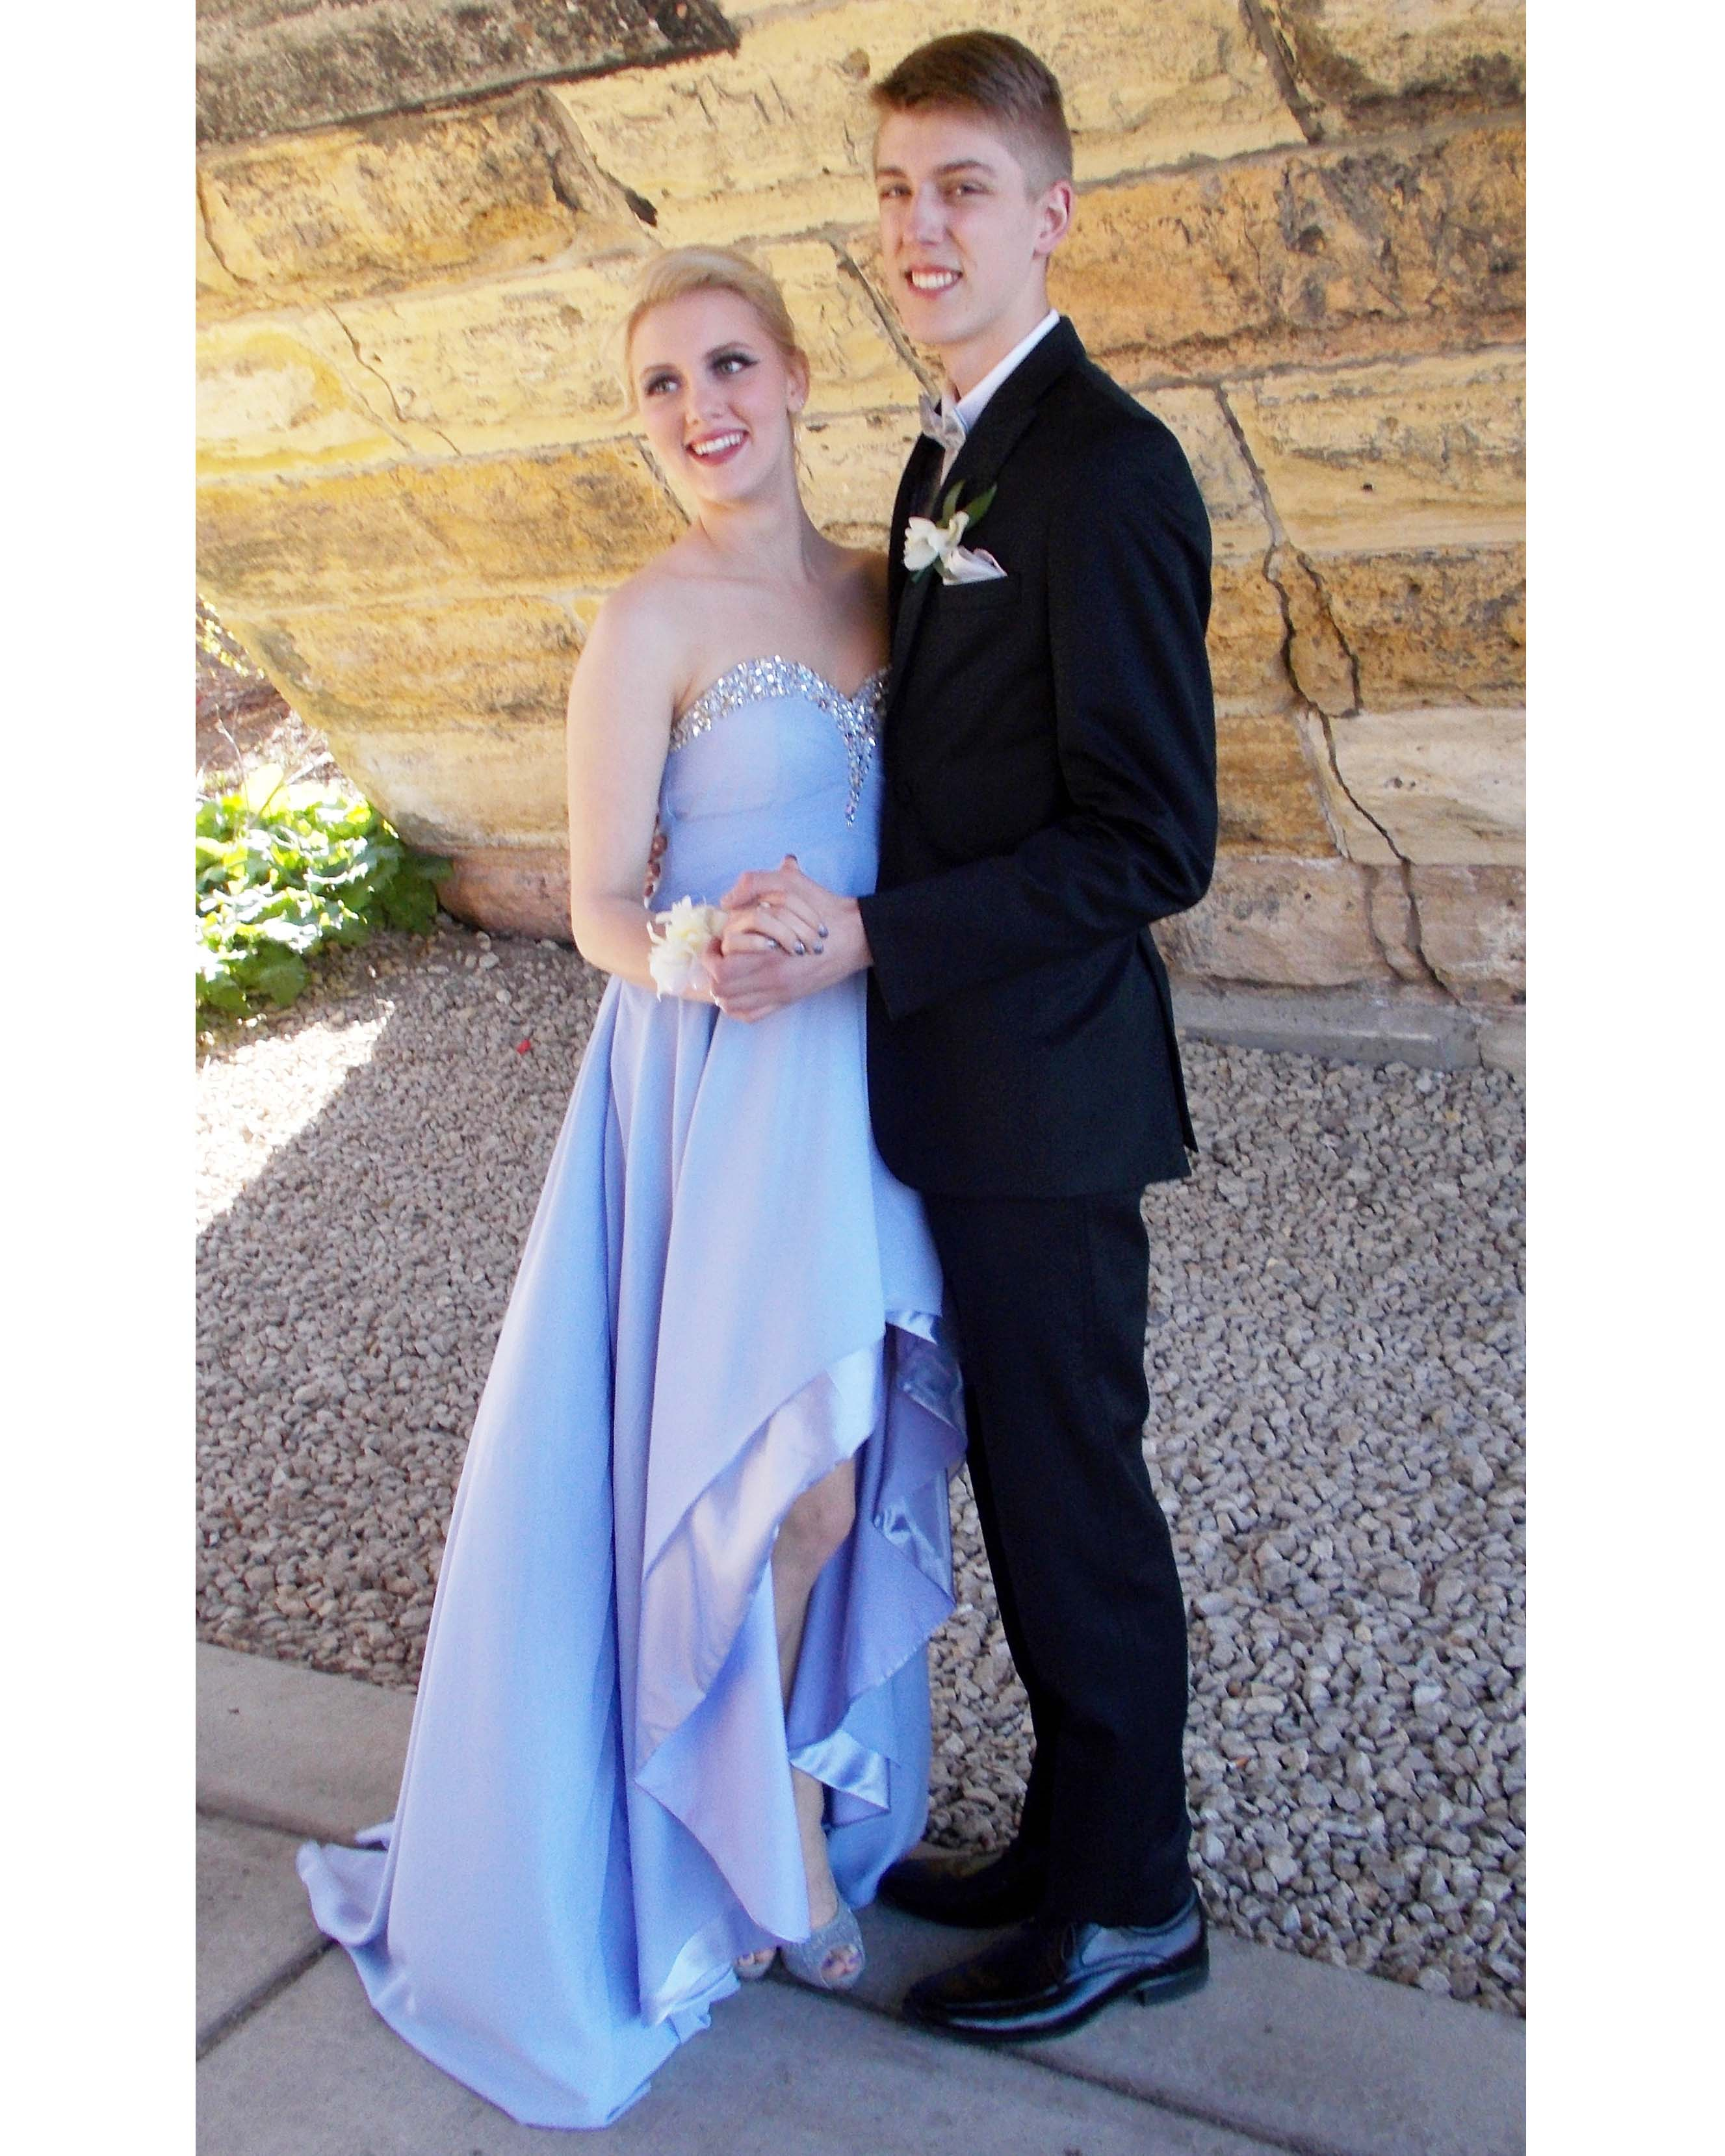 Online where to buy affordable prom dresses online quilt